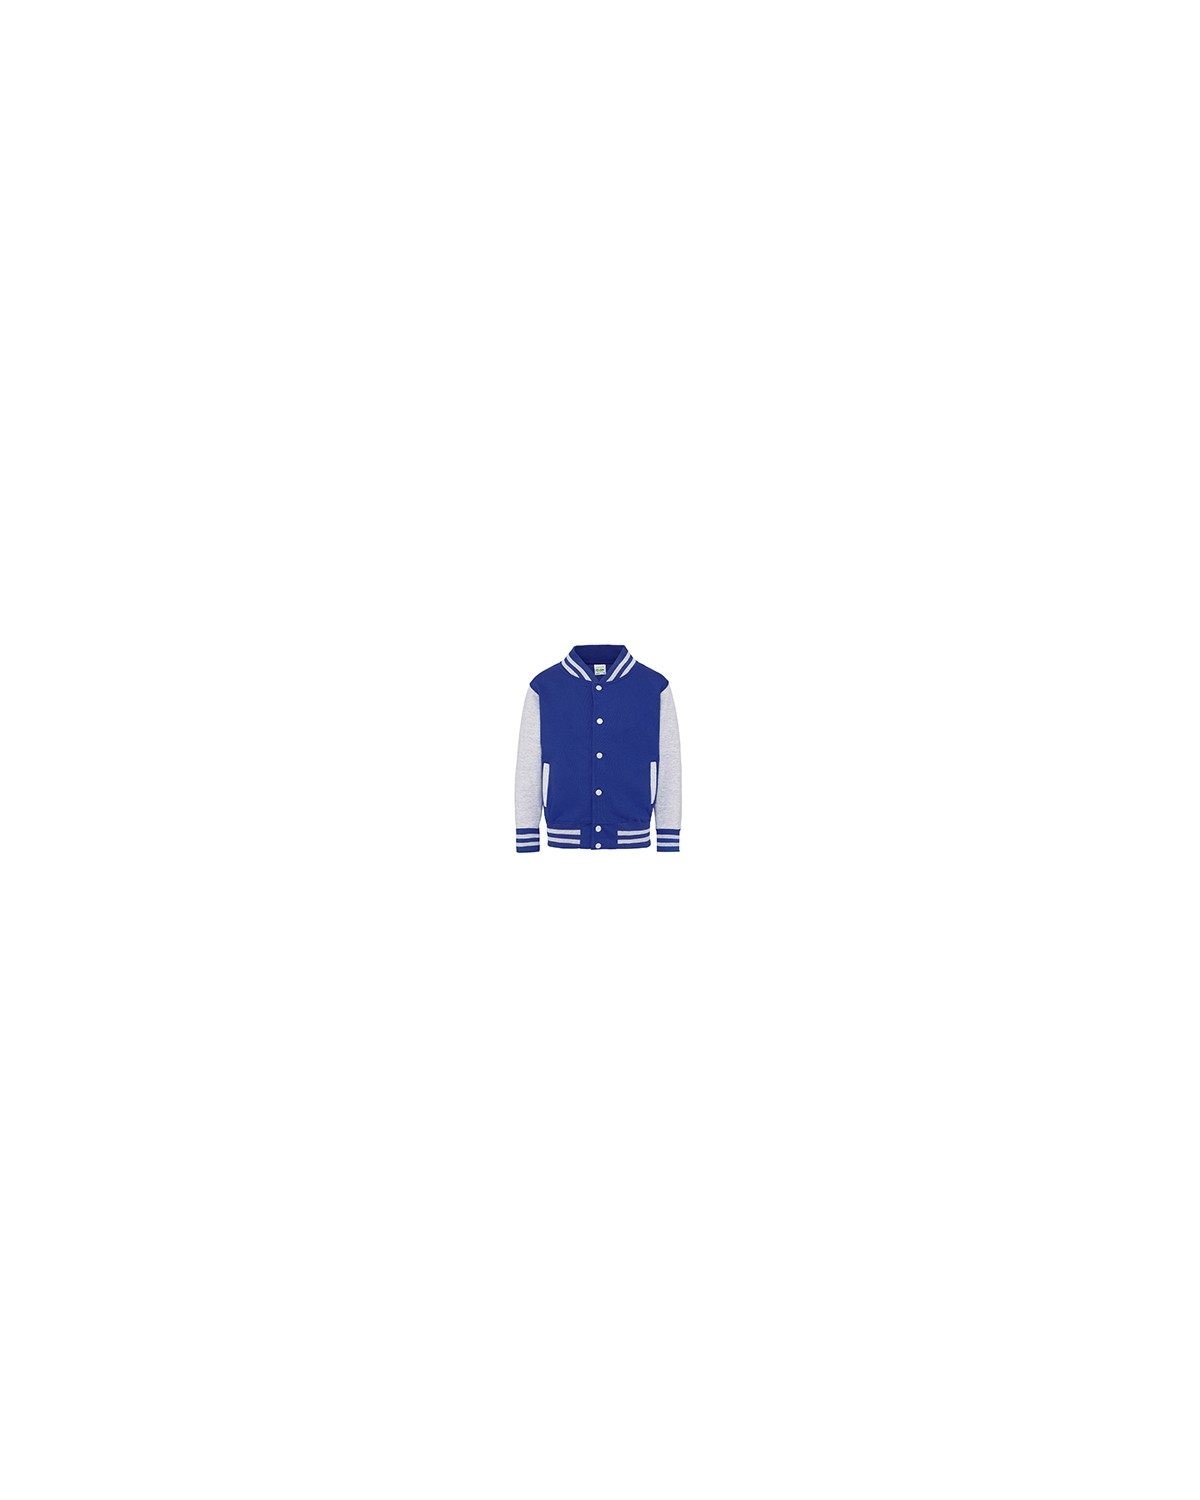 JHY043 Just Hoods By AWDis ROYL BL/ HTH GRY